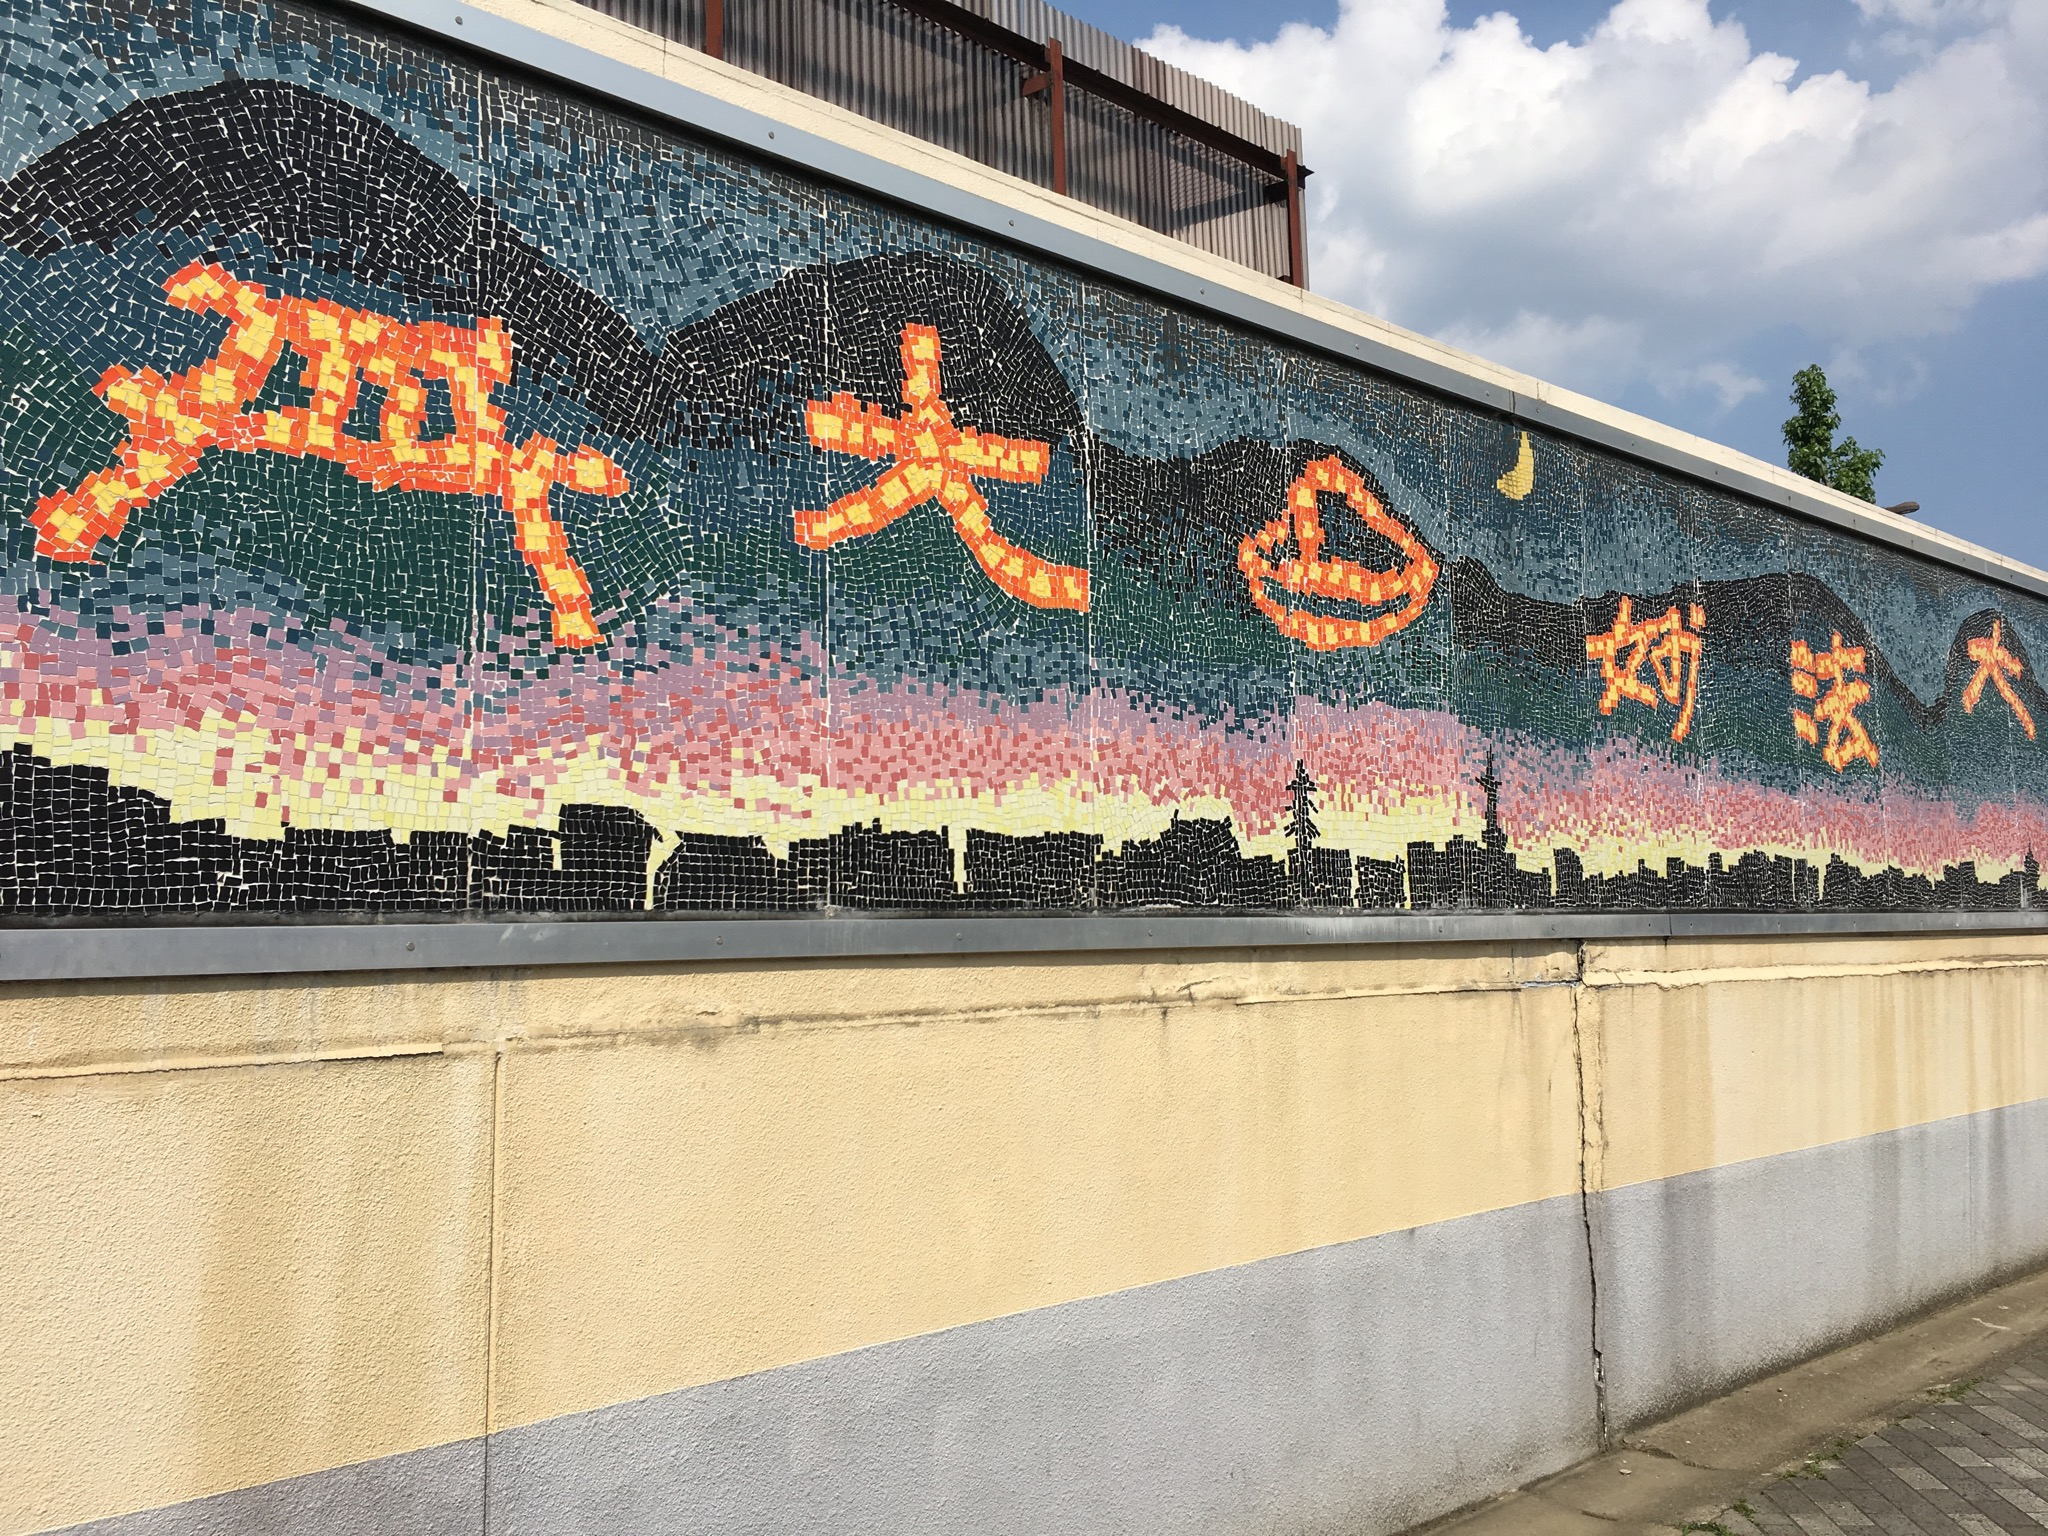 One of the first fire related images I saw in Kyoto was this mosaic, near Nijo Station, depicting the kanji that are set ablaze on the mountains of Kyoto in August. They made me smile. Why? Because as a fire ecologist it is special to see this element celebrated!